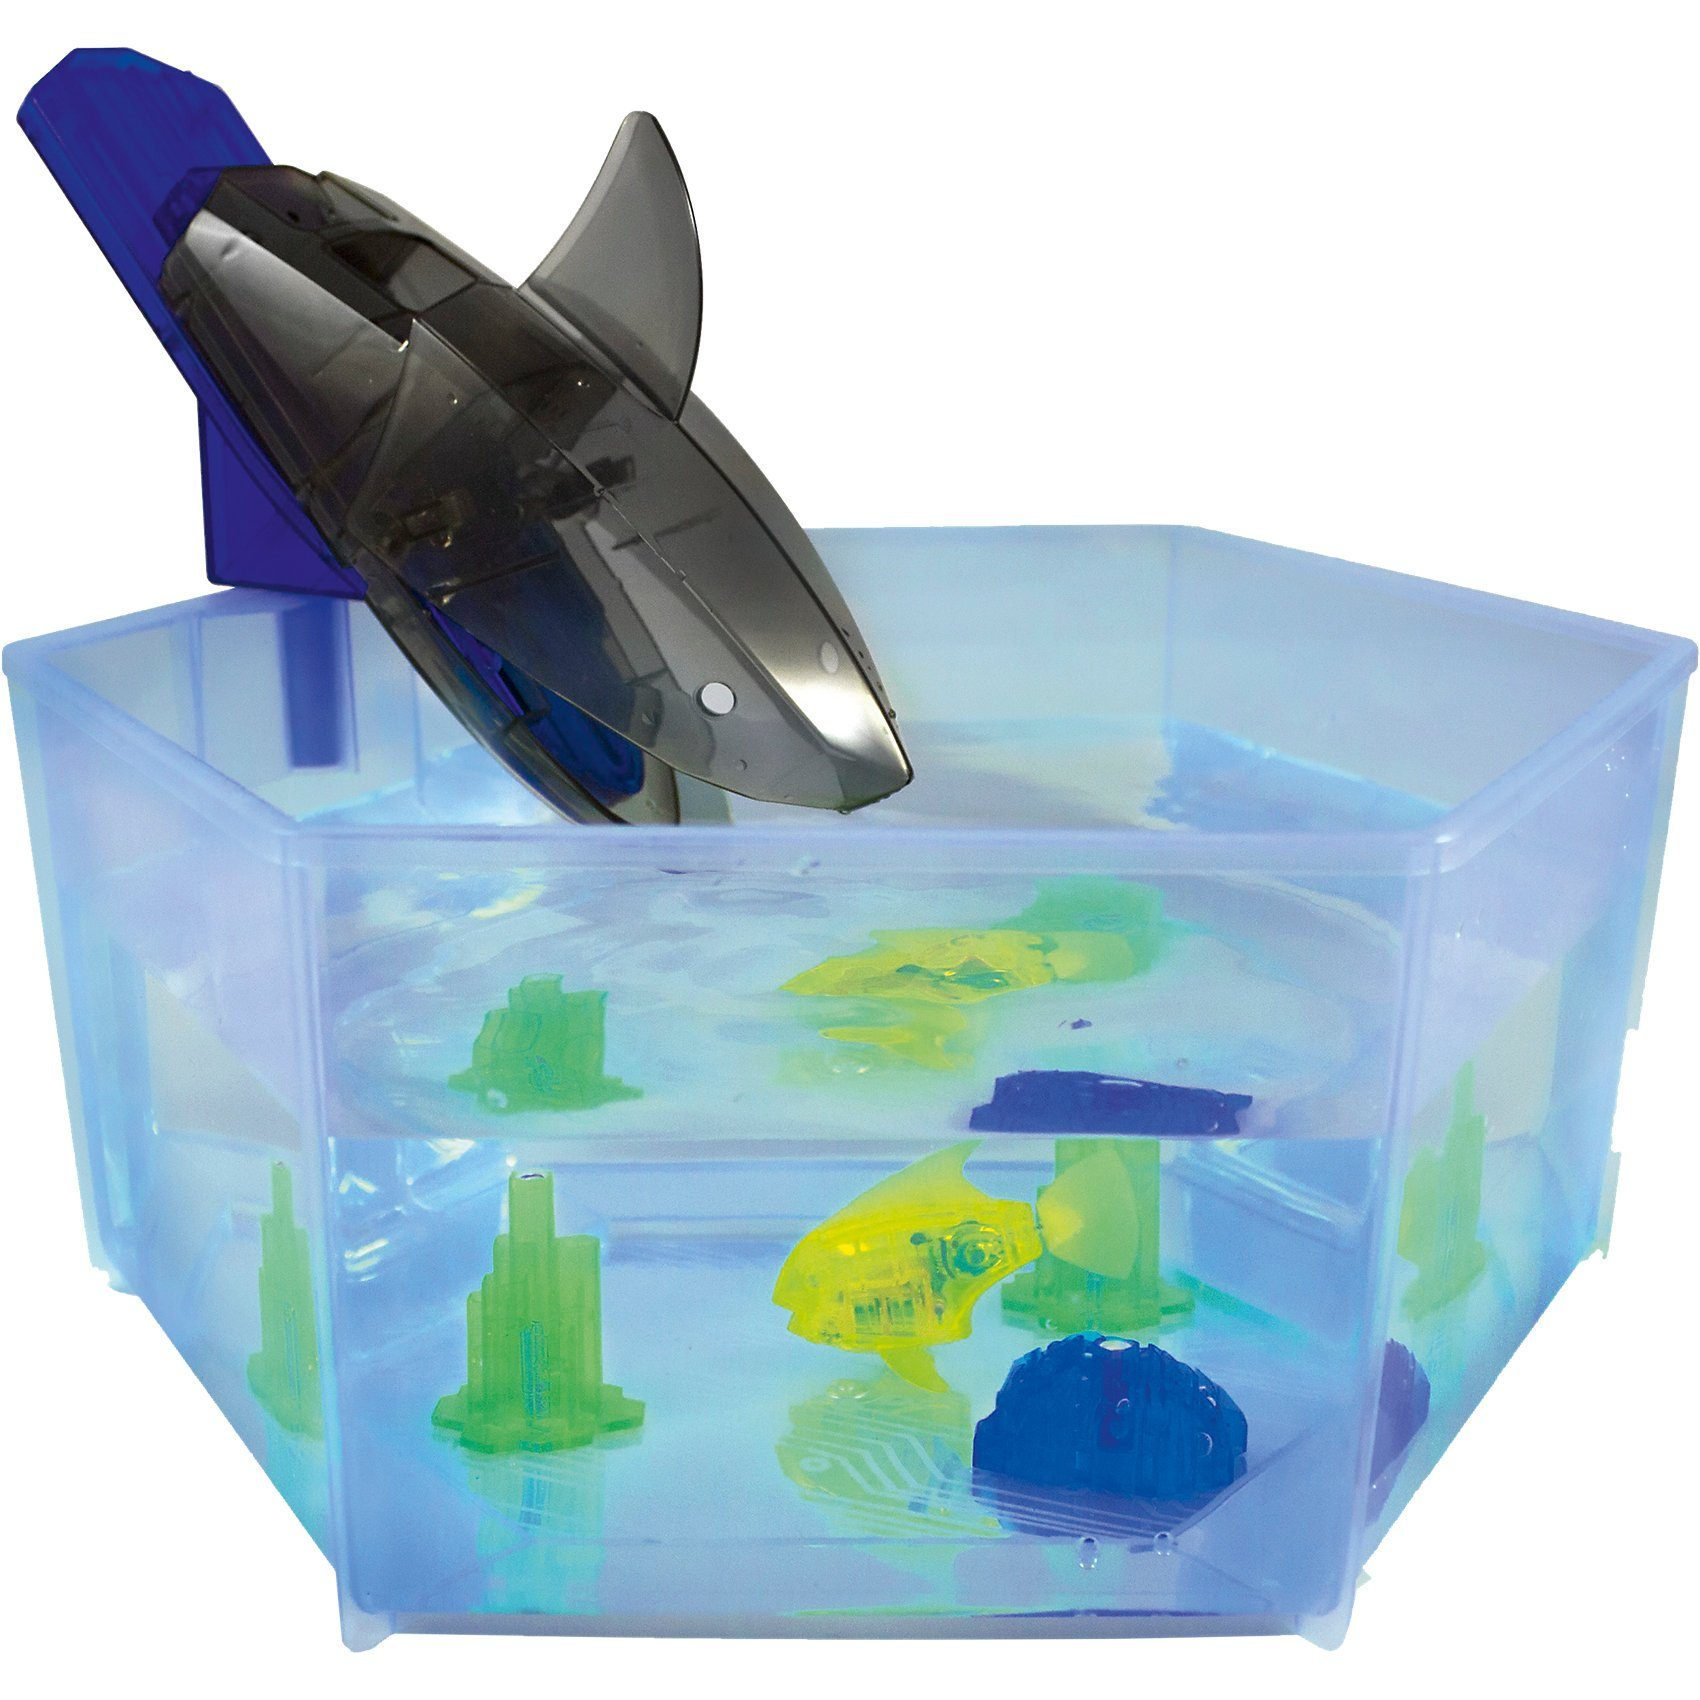 Hexbug - Aquabot Shark Tank